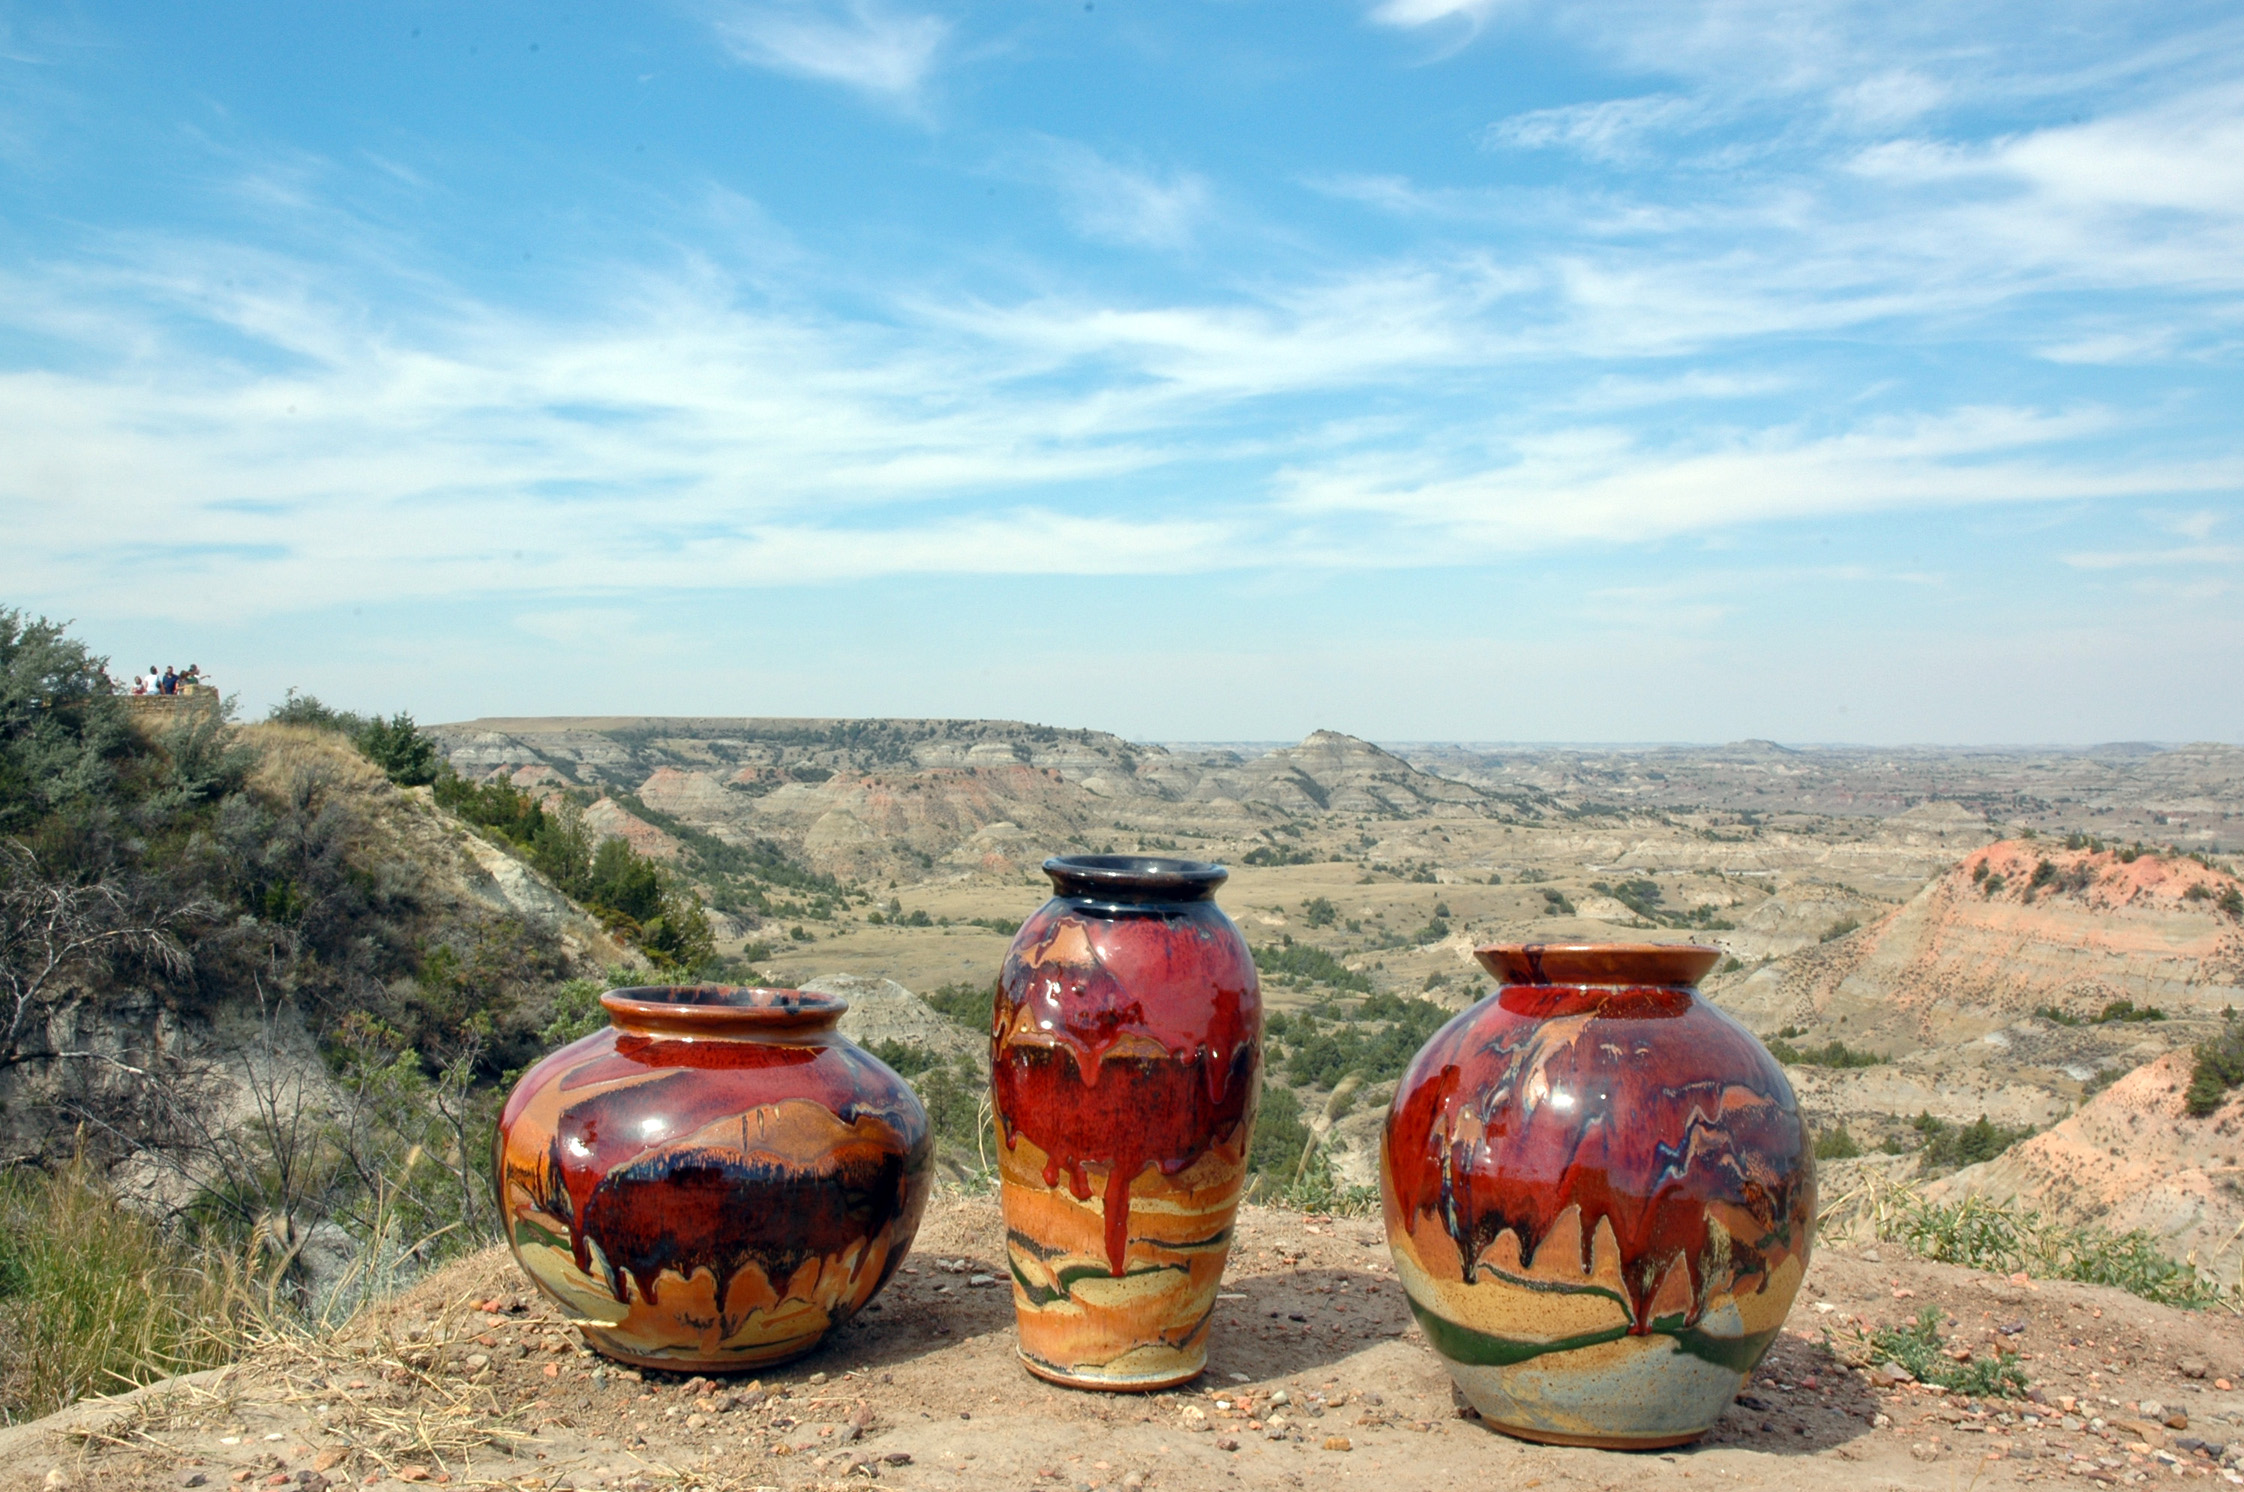 Smith's pottery and the landscape which inspires it, 'striped in the colors of red, tan and black by prairie fires'